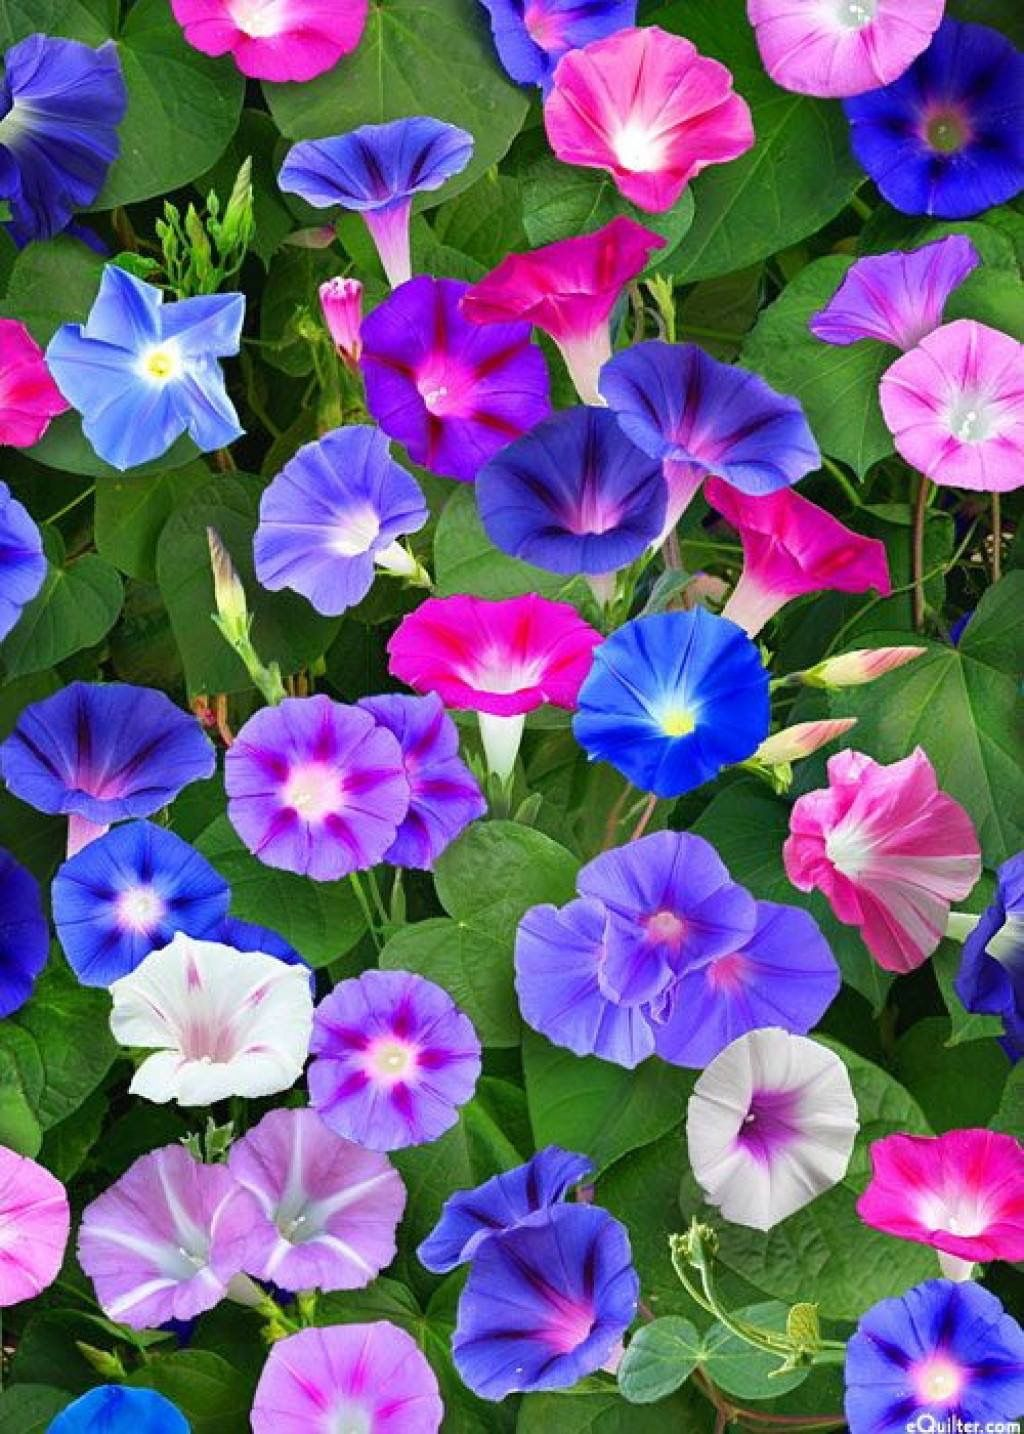 Morning Glories Ipomoea Purpurea Morning Glory Flowers Flowers Nature Beautiful Flowers